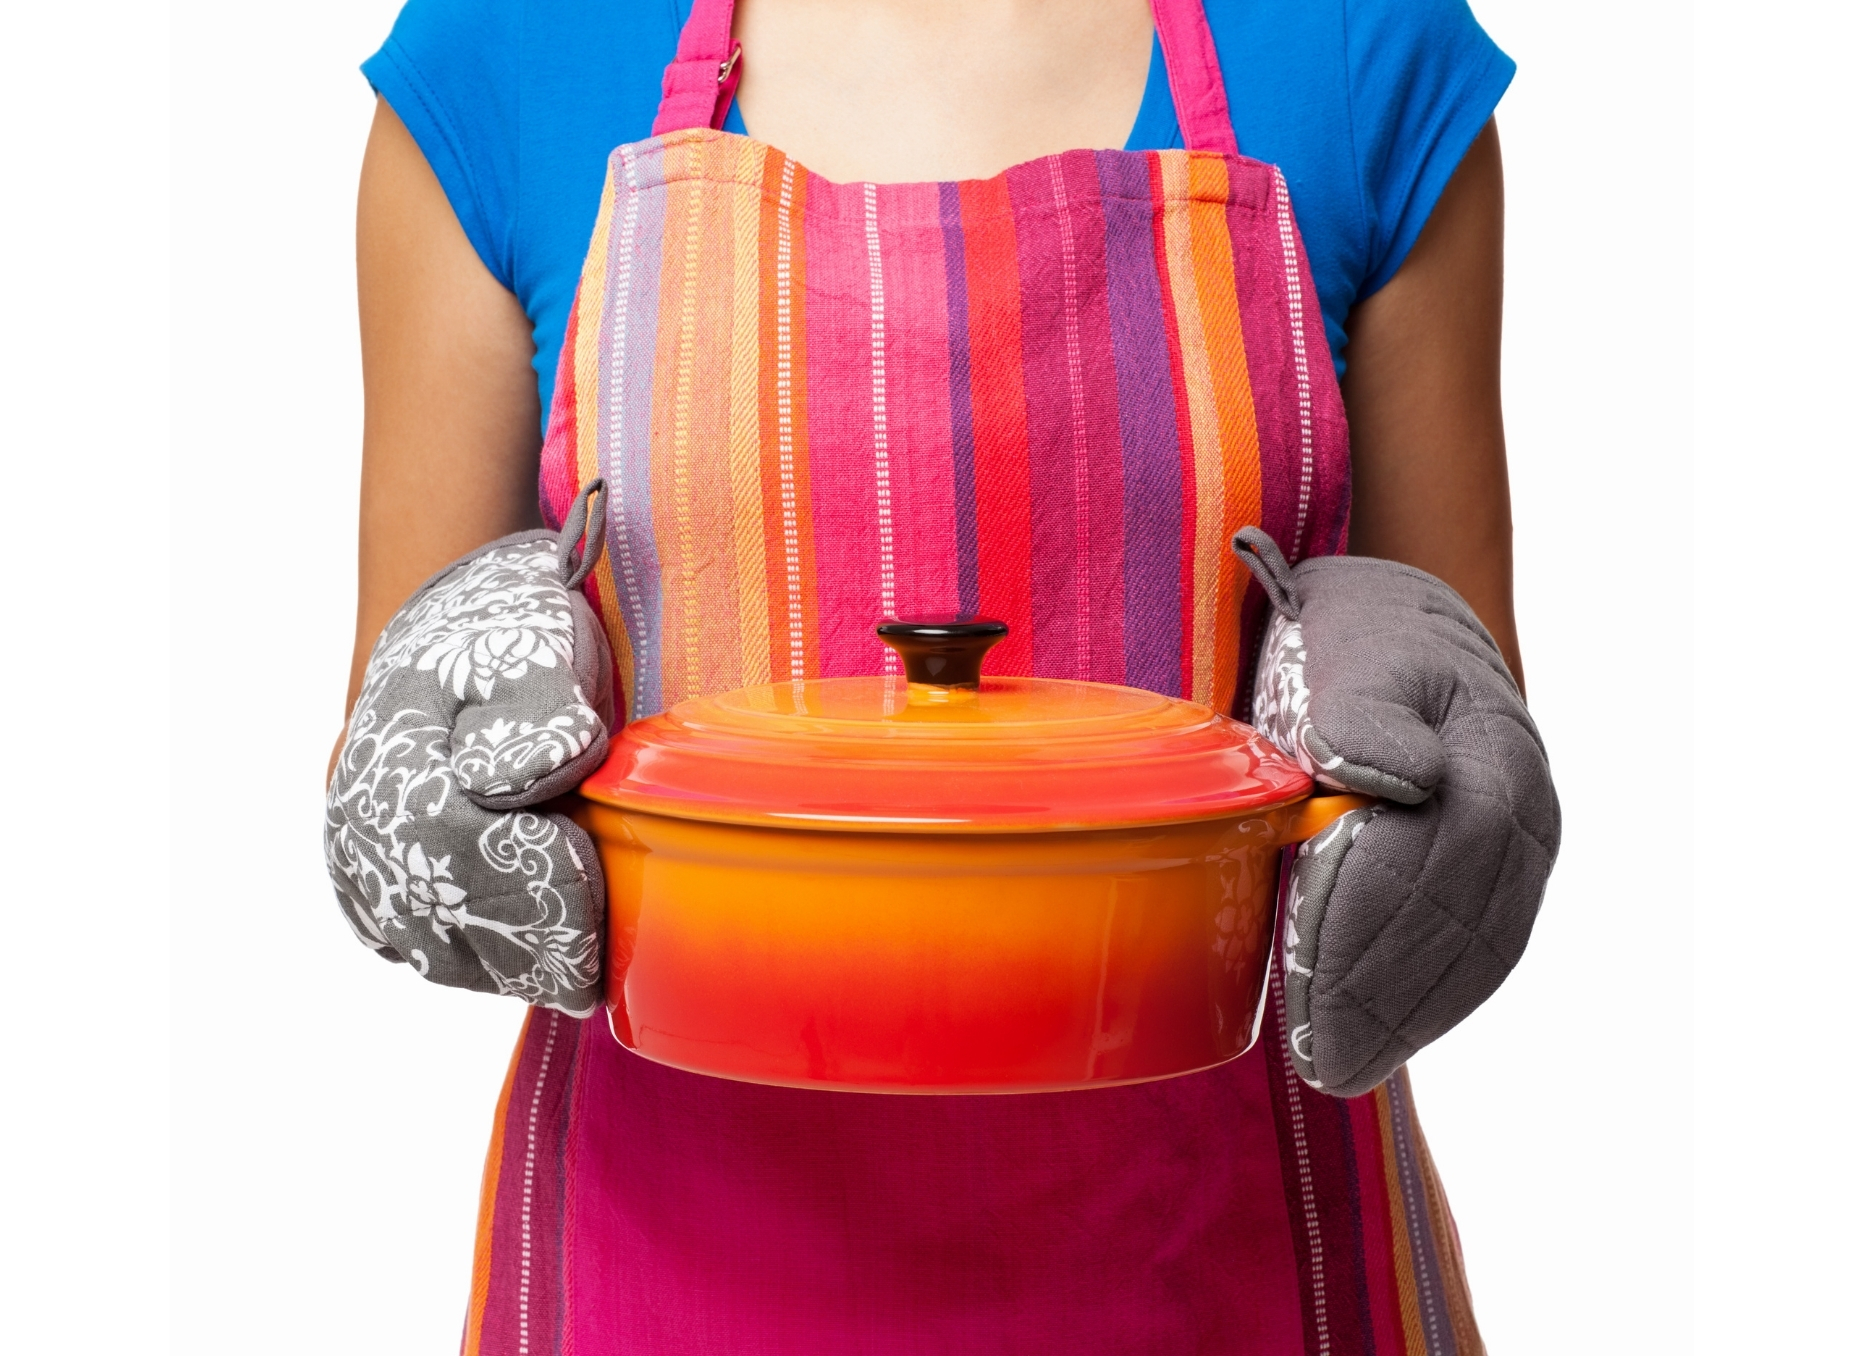 Woman with Cooking Pot